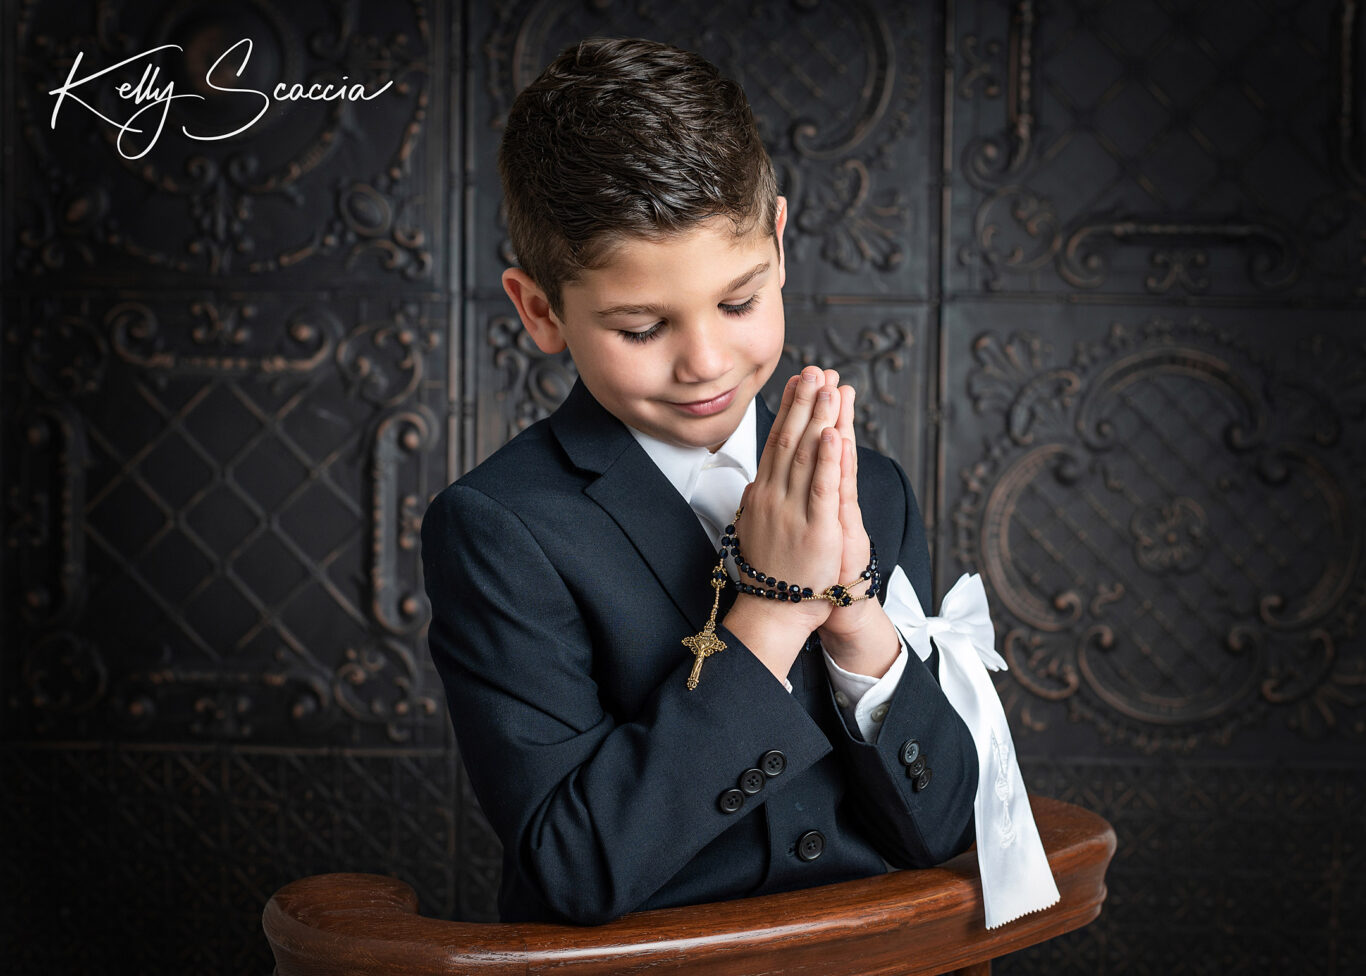 Studio communion boy portrait wearing a dark, navy suit, white bow on arm, holding his rosary, smiling, looking at his hands